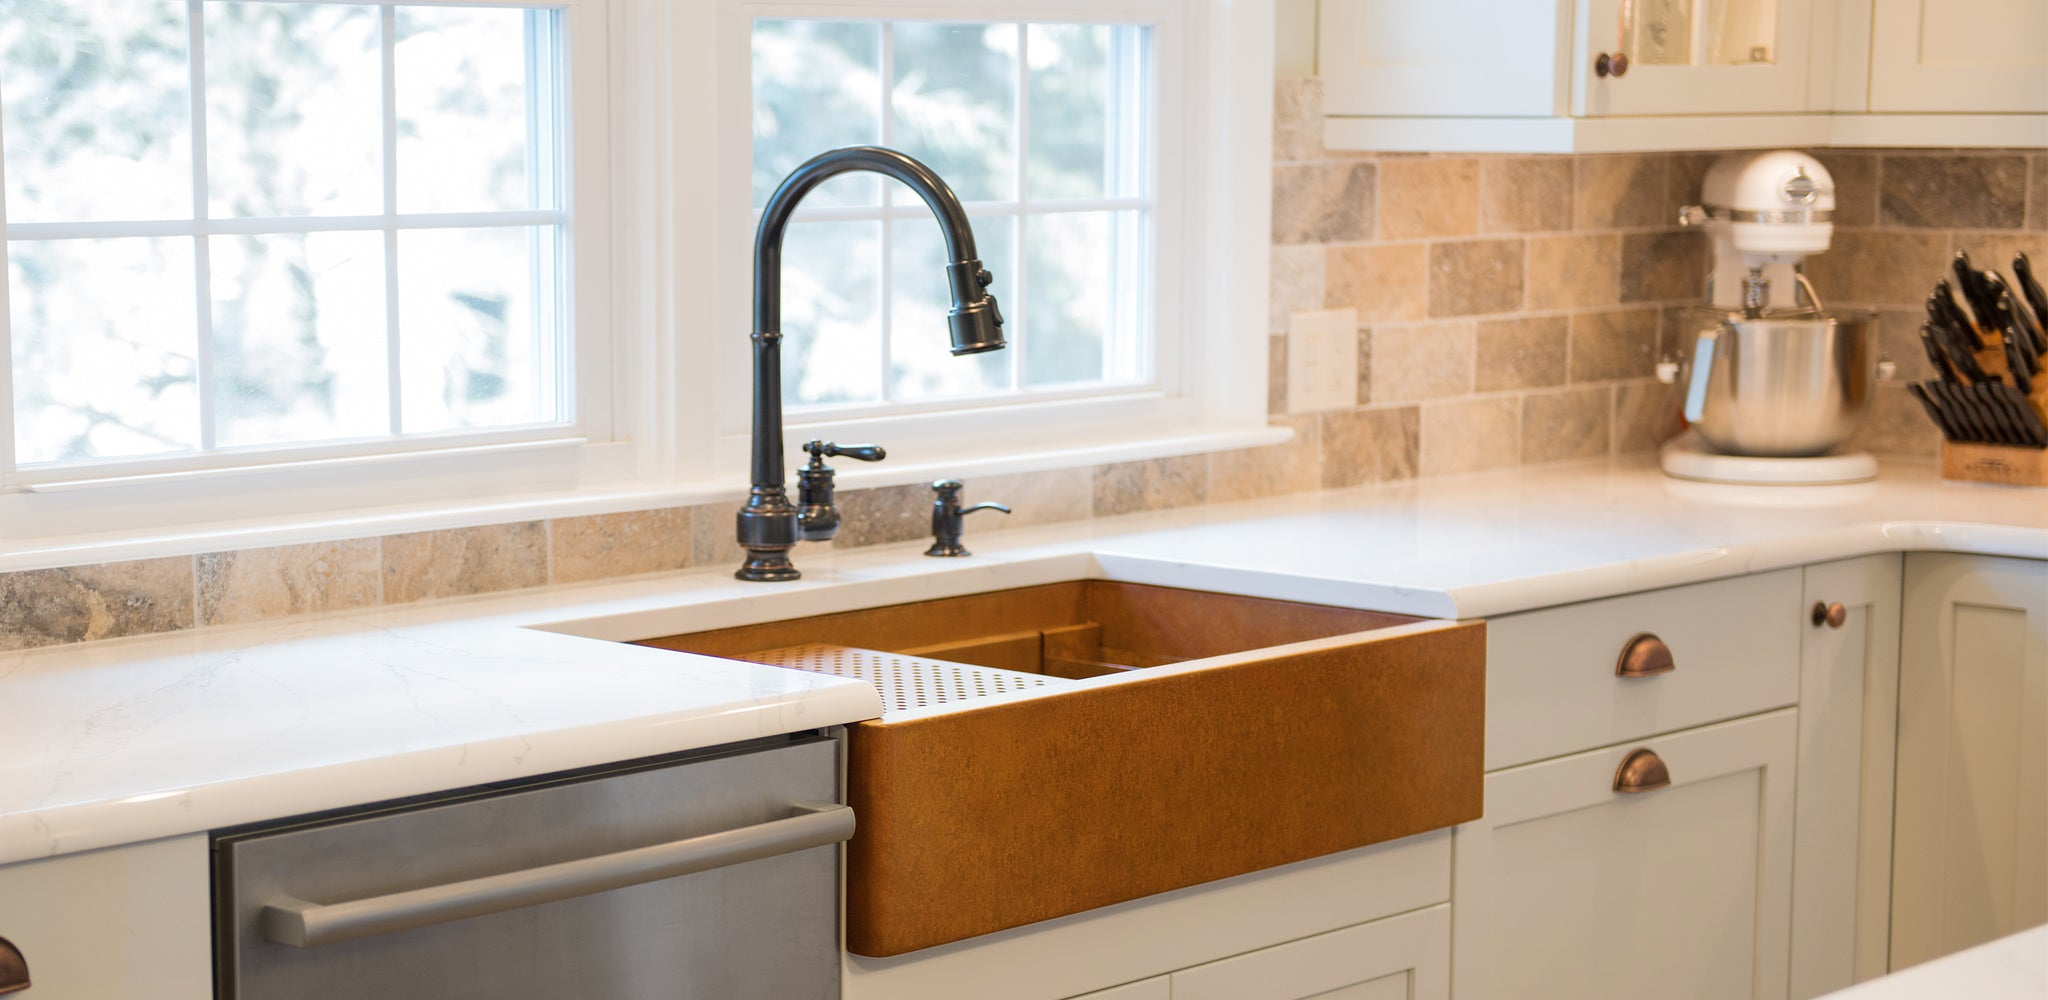 Havens | Luxury Metals: The Most Advanced Sinks In The World